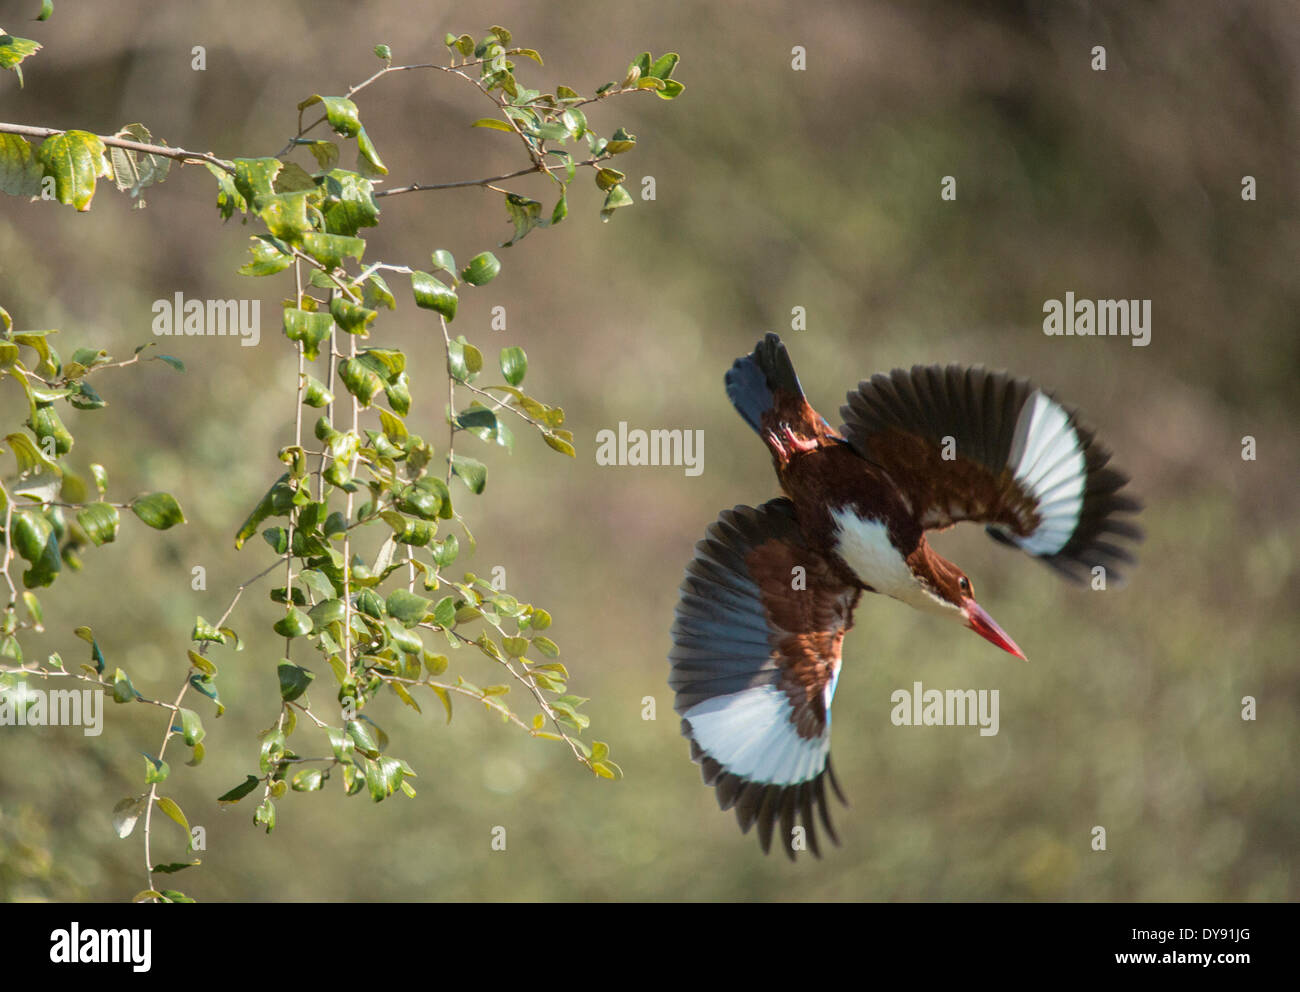 Indiano, kingfisher, Ranthambore, parco nazionale, Asia, India, animali, Rajasthan, Immagini Stock